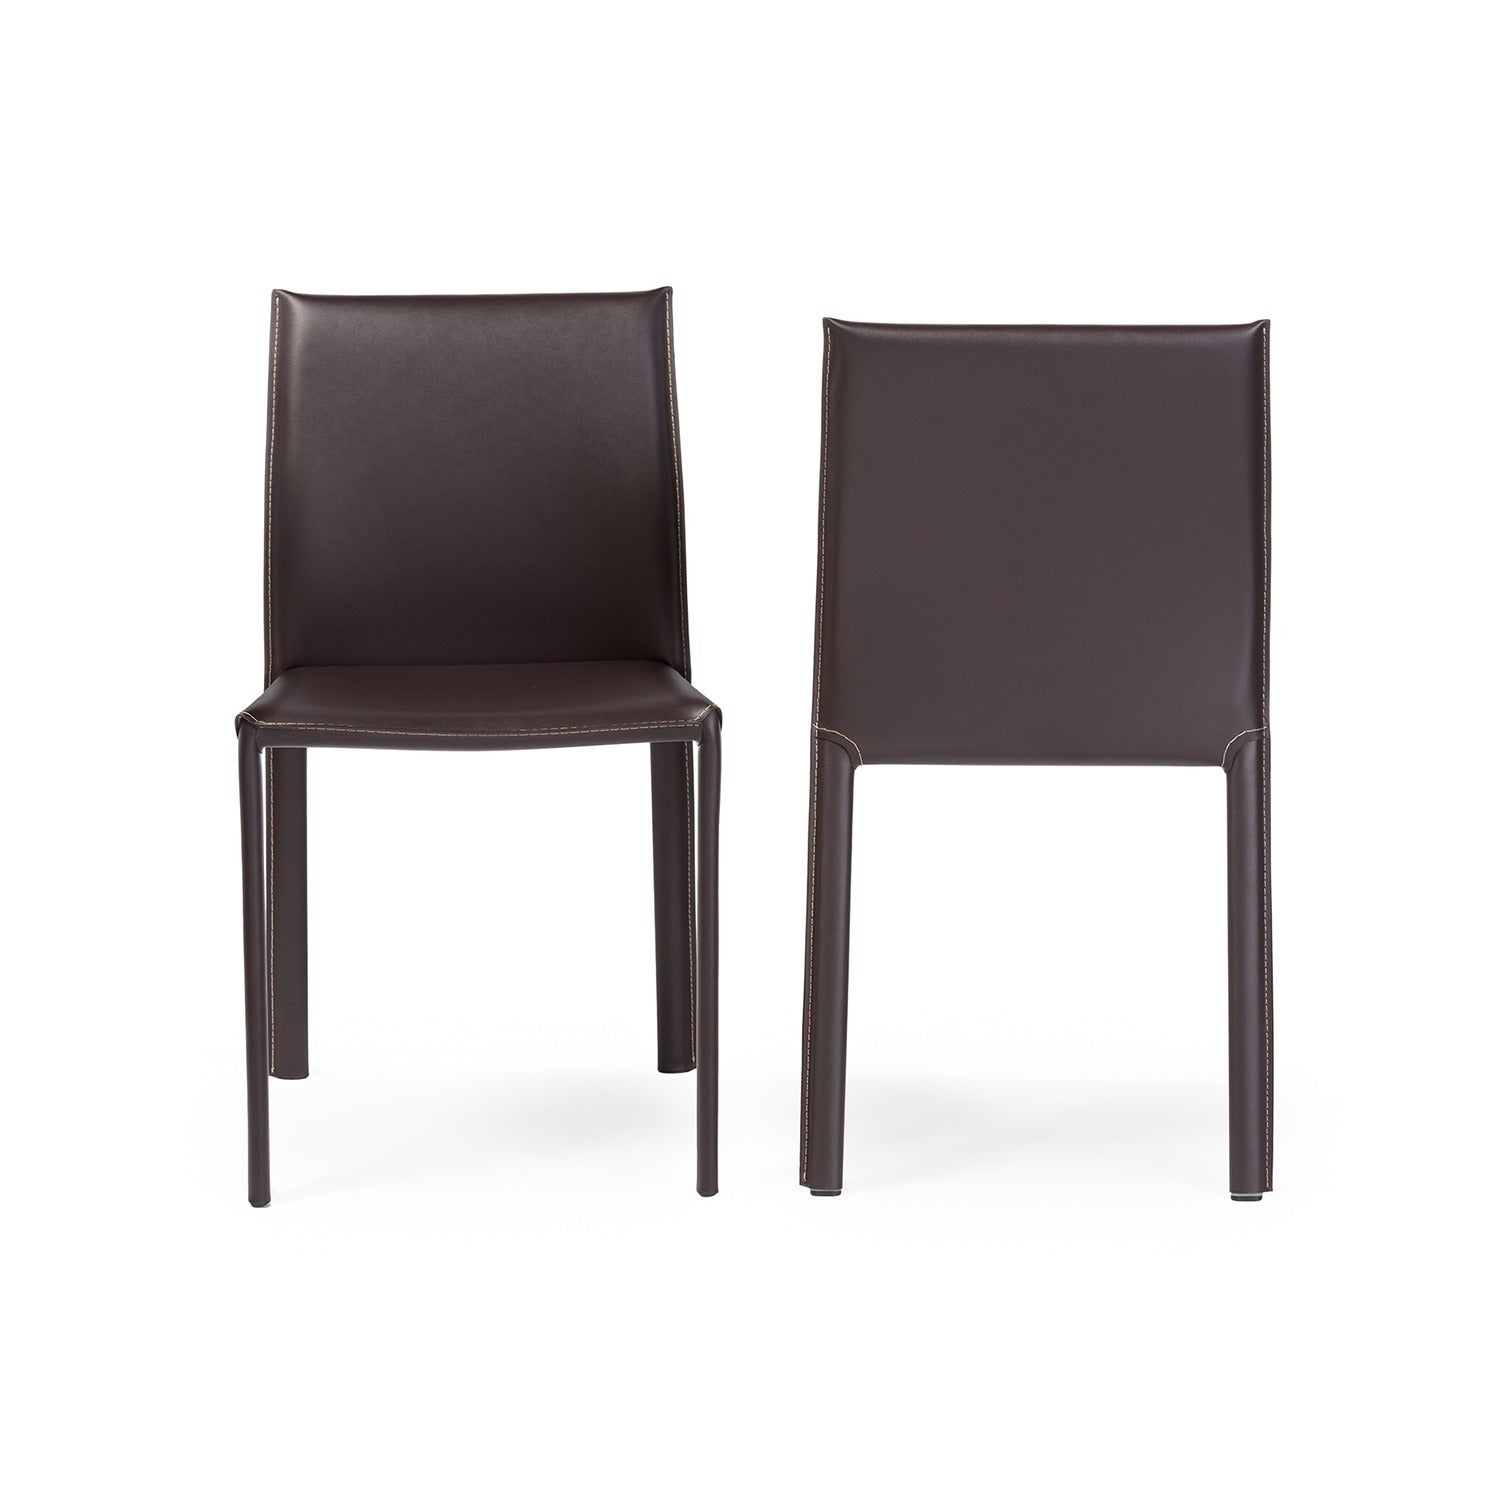 modern brown faux leather dining chair piece set by baxton studio  freeshipping today  overstockcom  . modern brown faux leather dining chair piece set by baxton